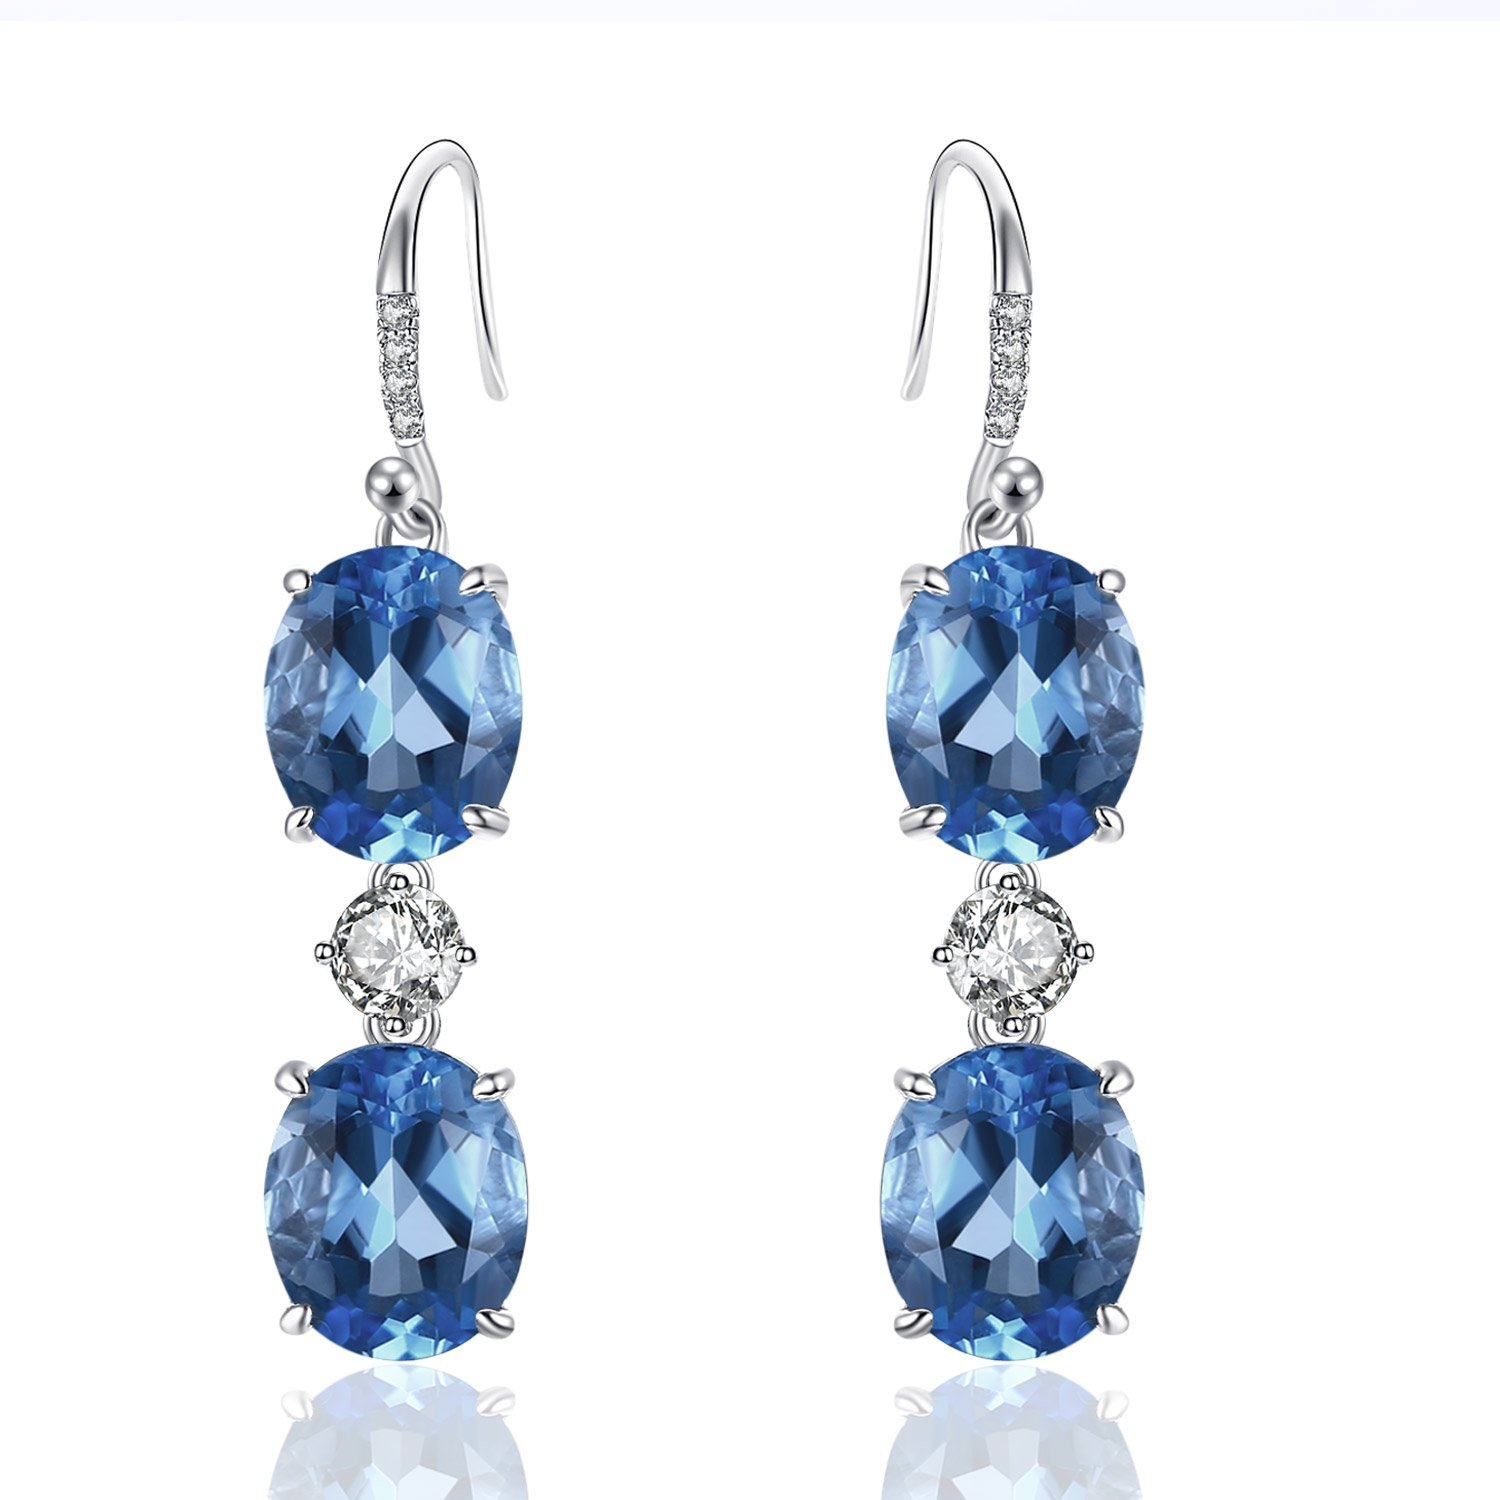 Caperci Brilliant Created Gemstone Oval Ocean Blue Sapphire Triple Drop Earrings in Sterling Silver